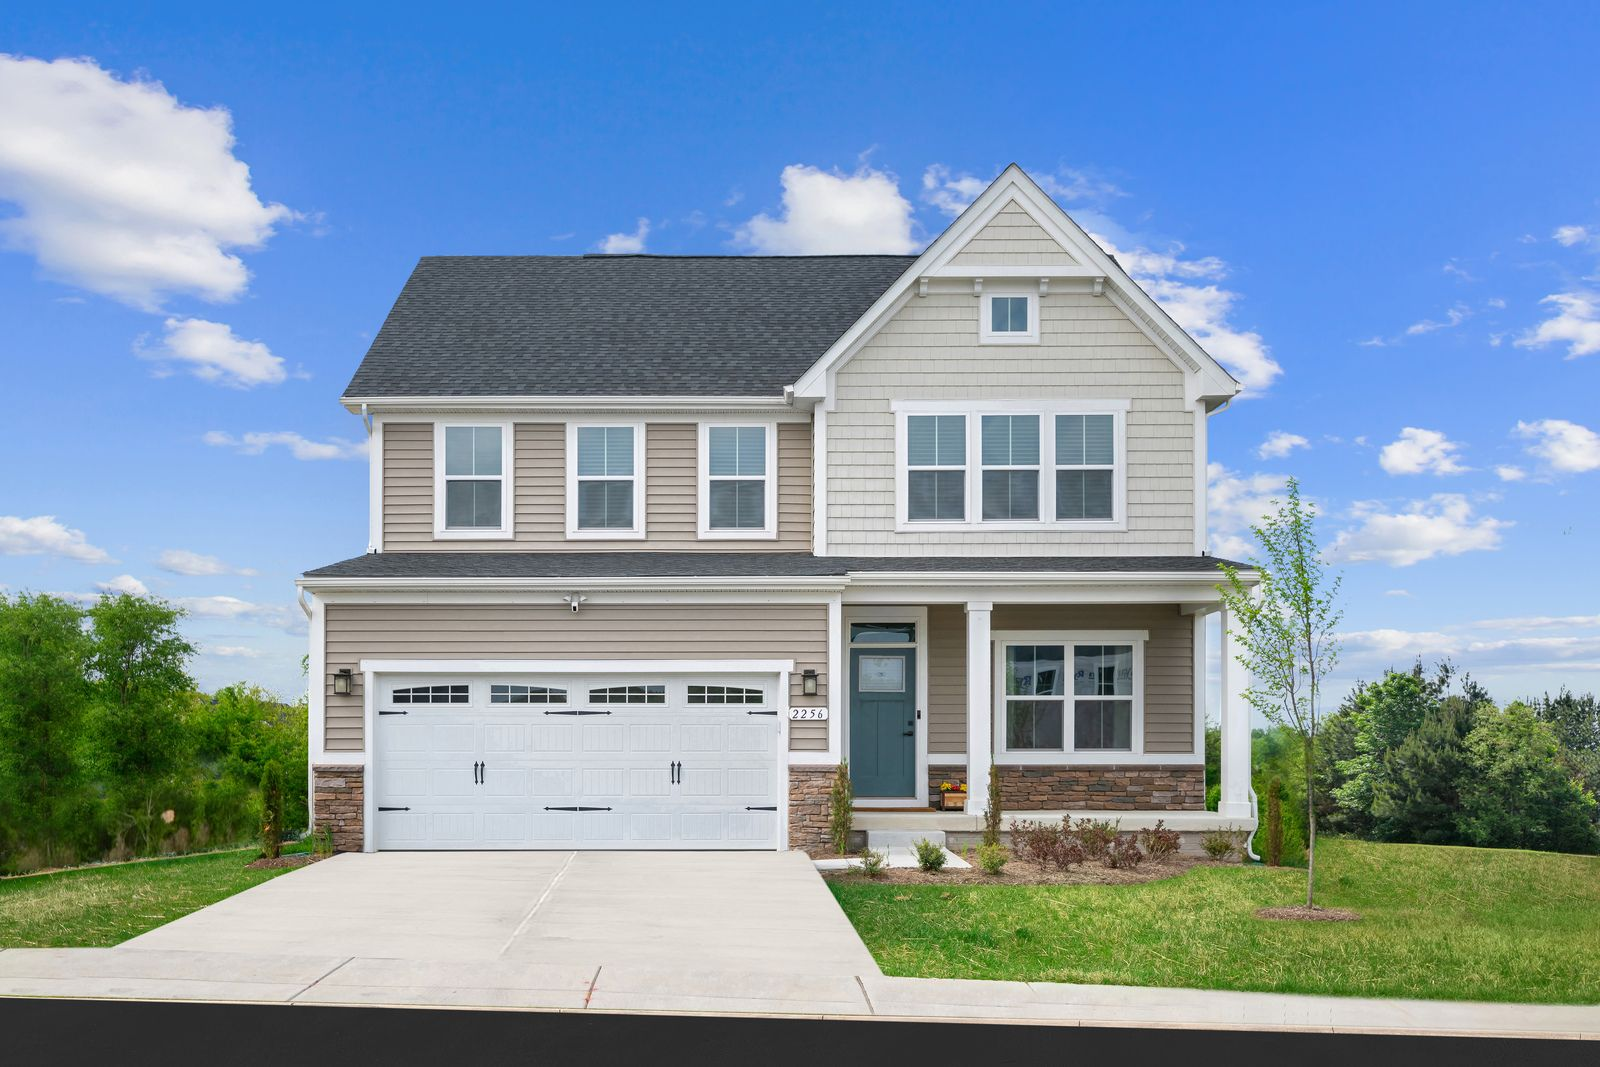 WELCOME HOME TO PRESERVE AT FALLS POINTE:Upgrade your life in Olmsted Falls! 2-story and ranch homes with tree-lined homesites.Click Here to Schedule Your Private or Virtual Visit Today!